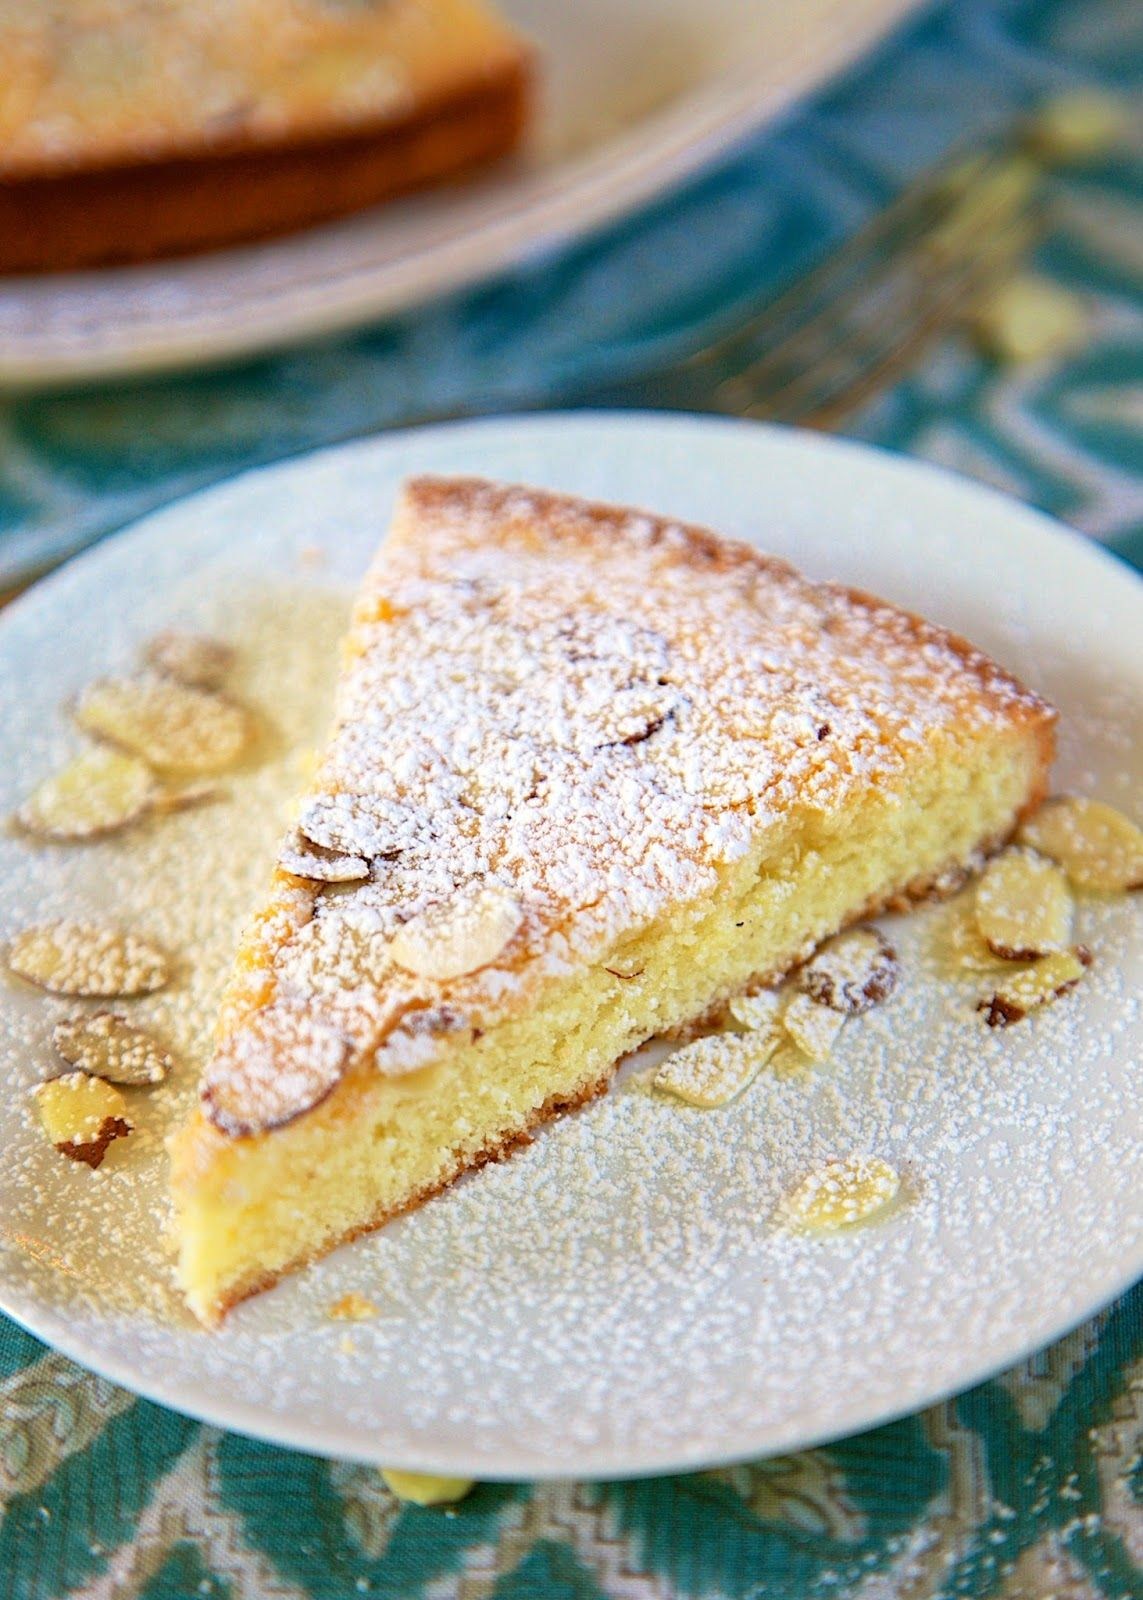 How to make almond cake from scratch